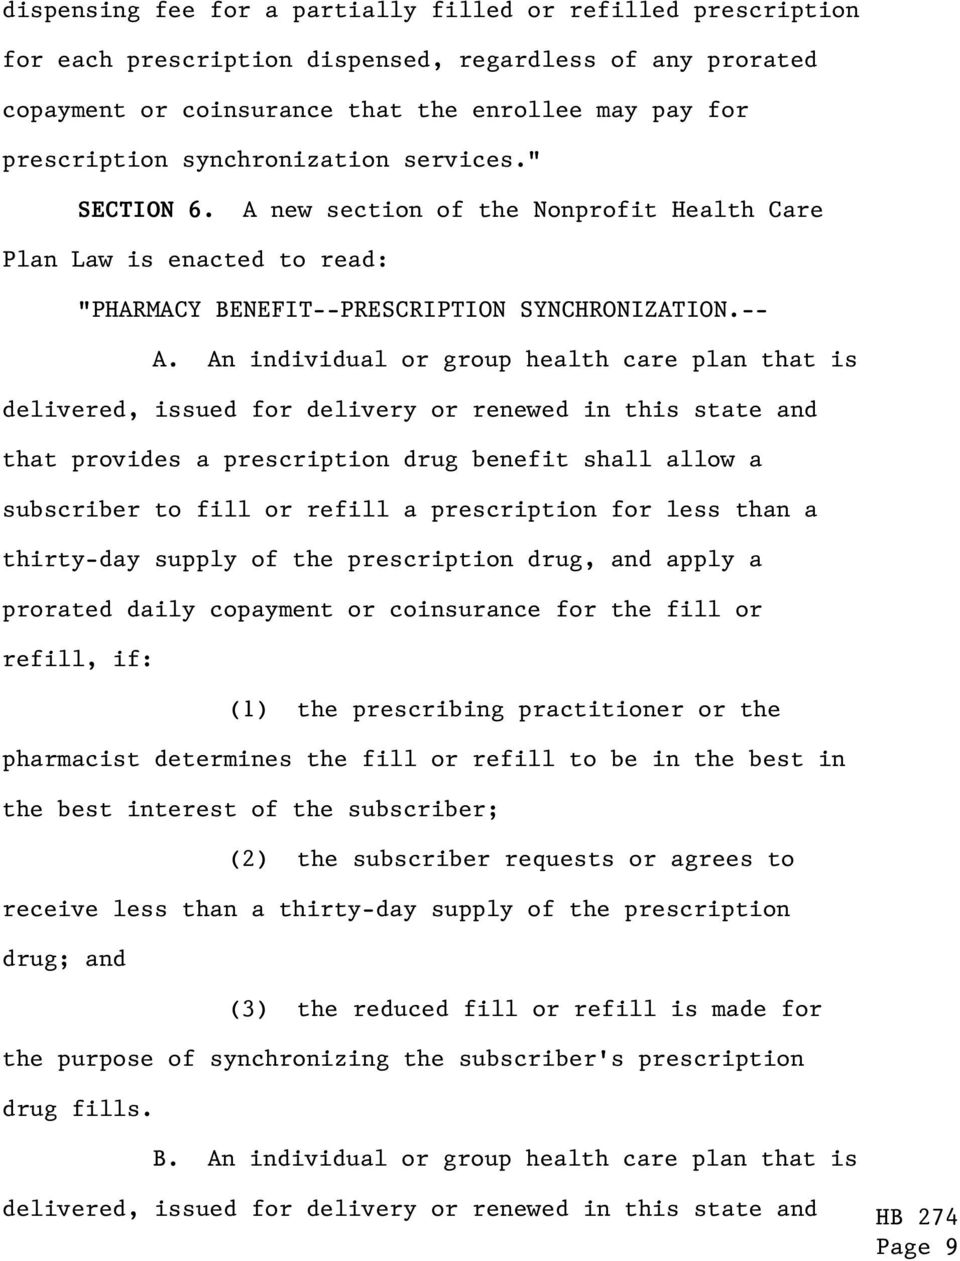 An individual or group health care plan that is delivered, issued for delivery or renewed in this state and that provides a prescription drug benefit shall allow a subscriber to fill or refill a